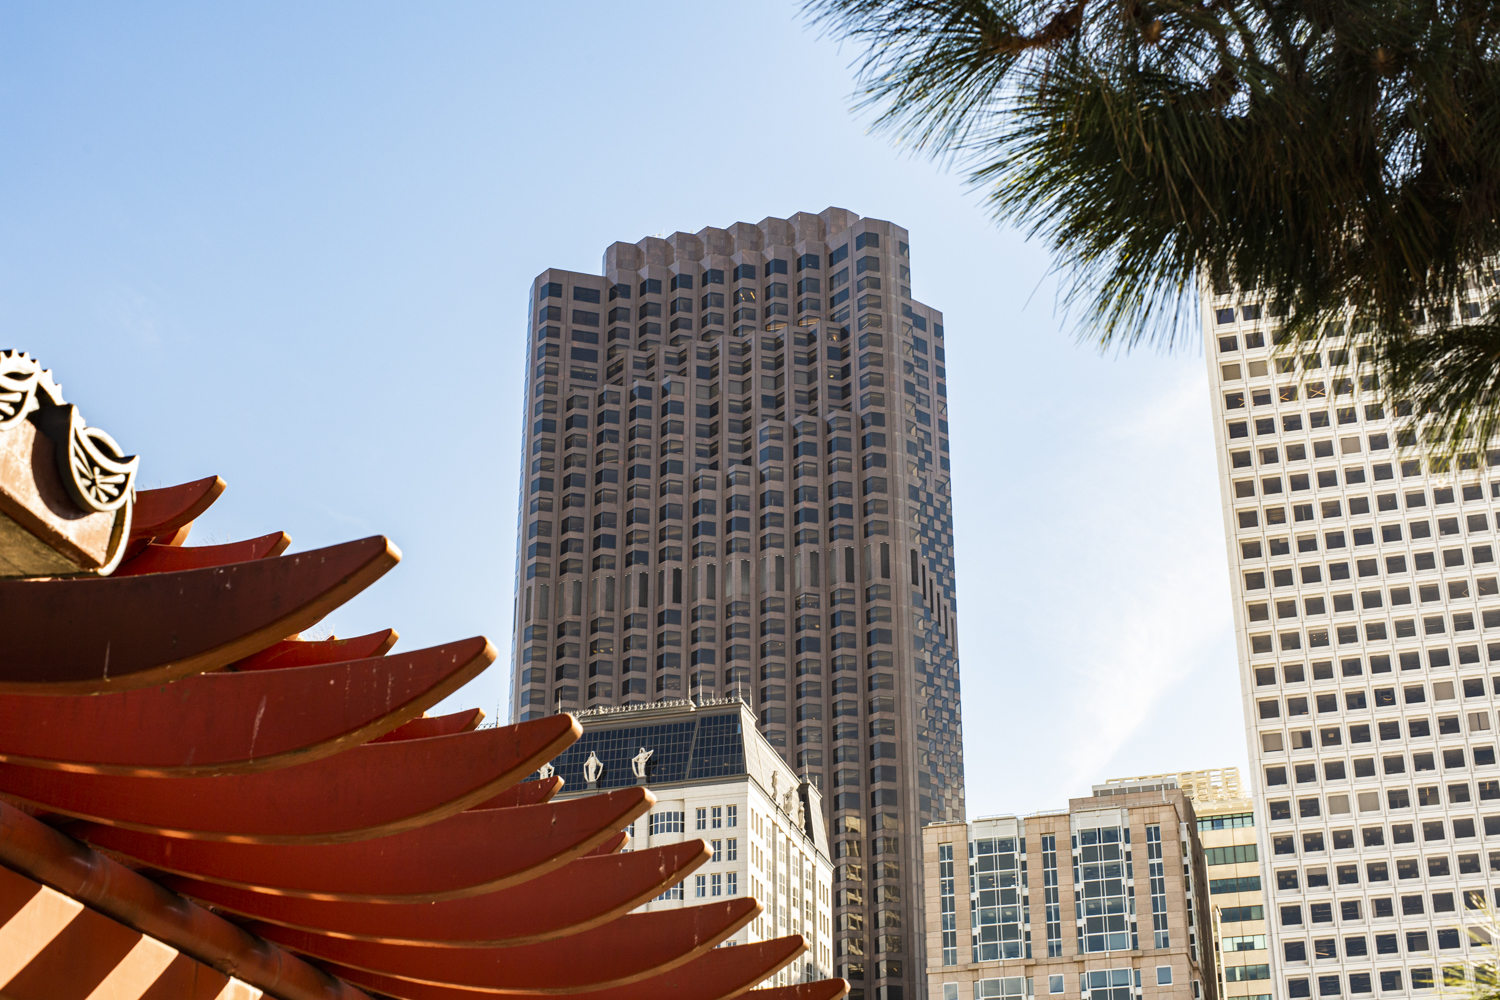 555 California Street, image by Andrew Campbell Nelson